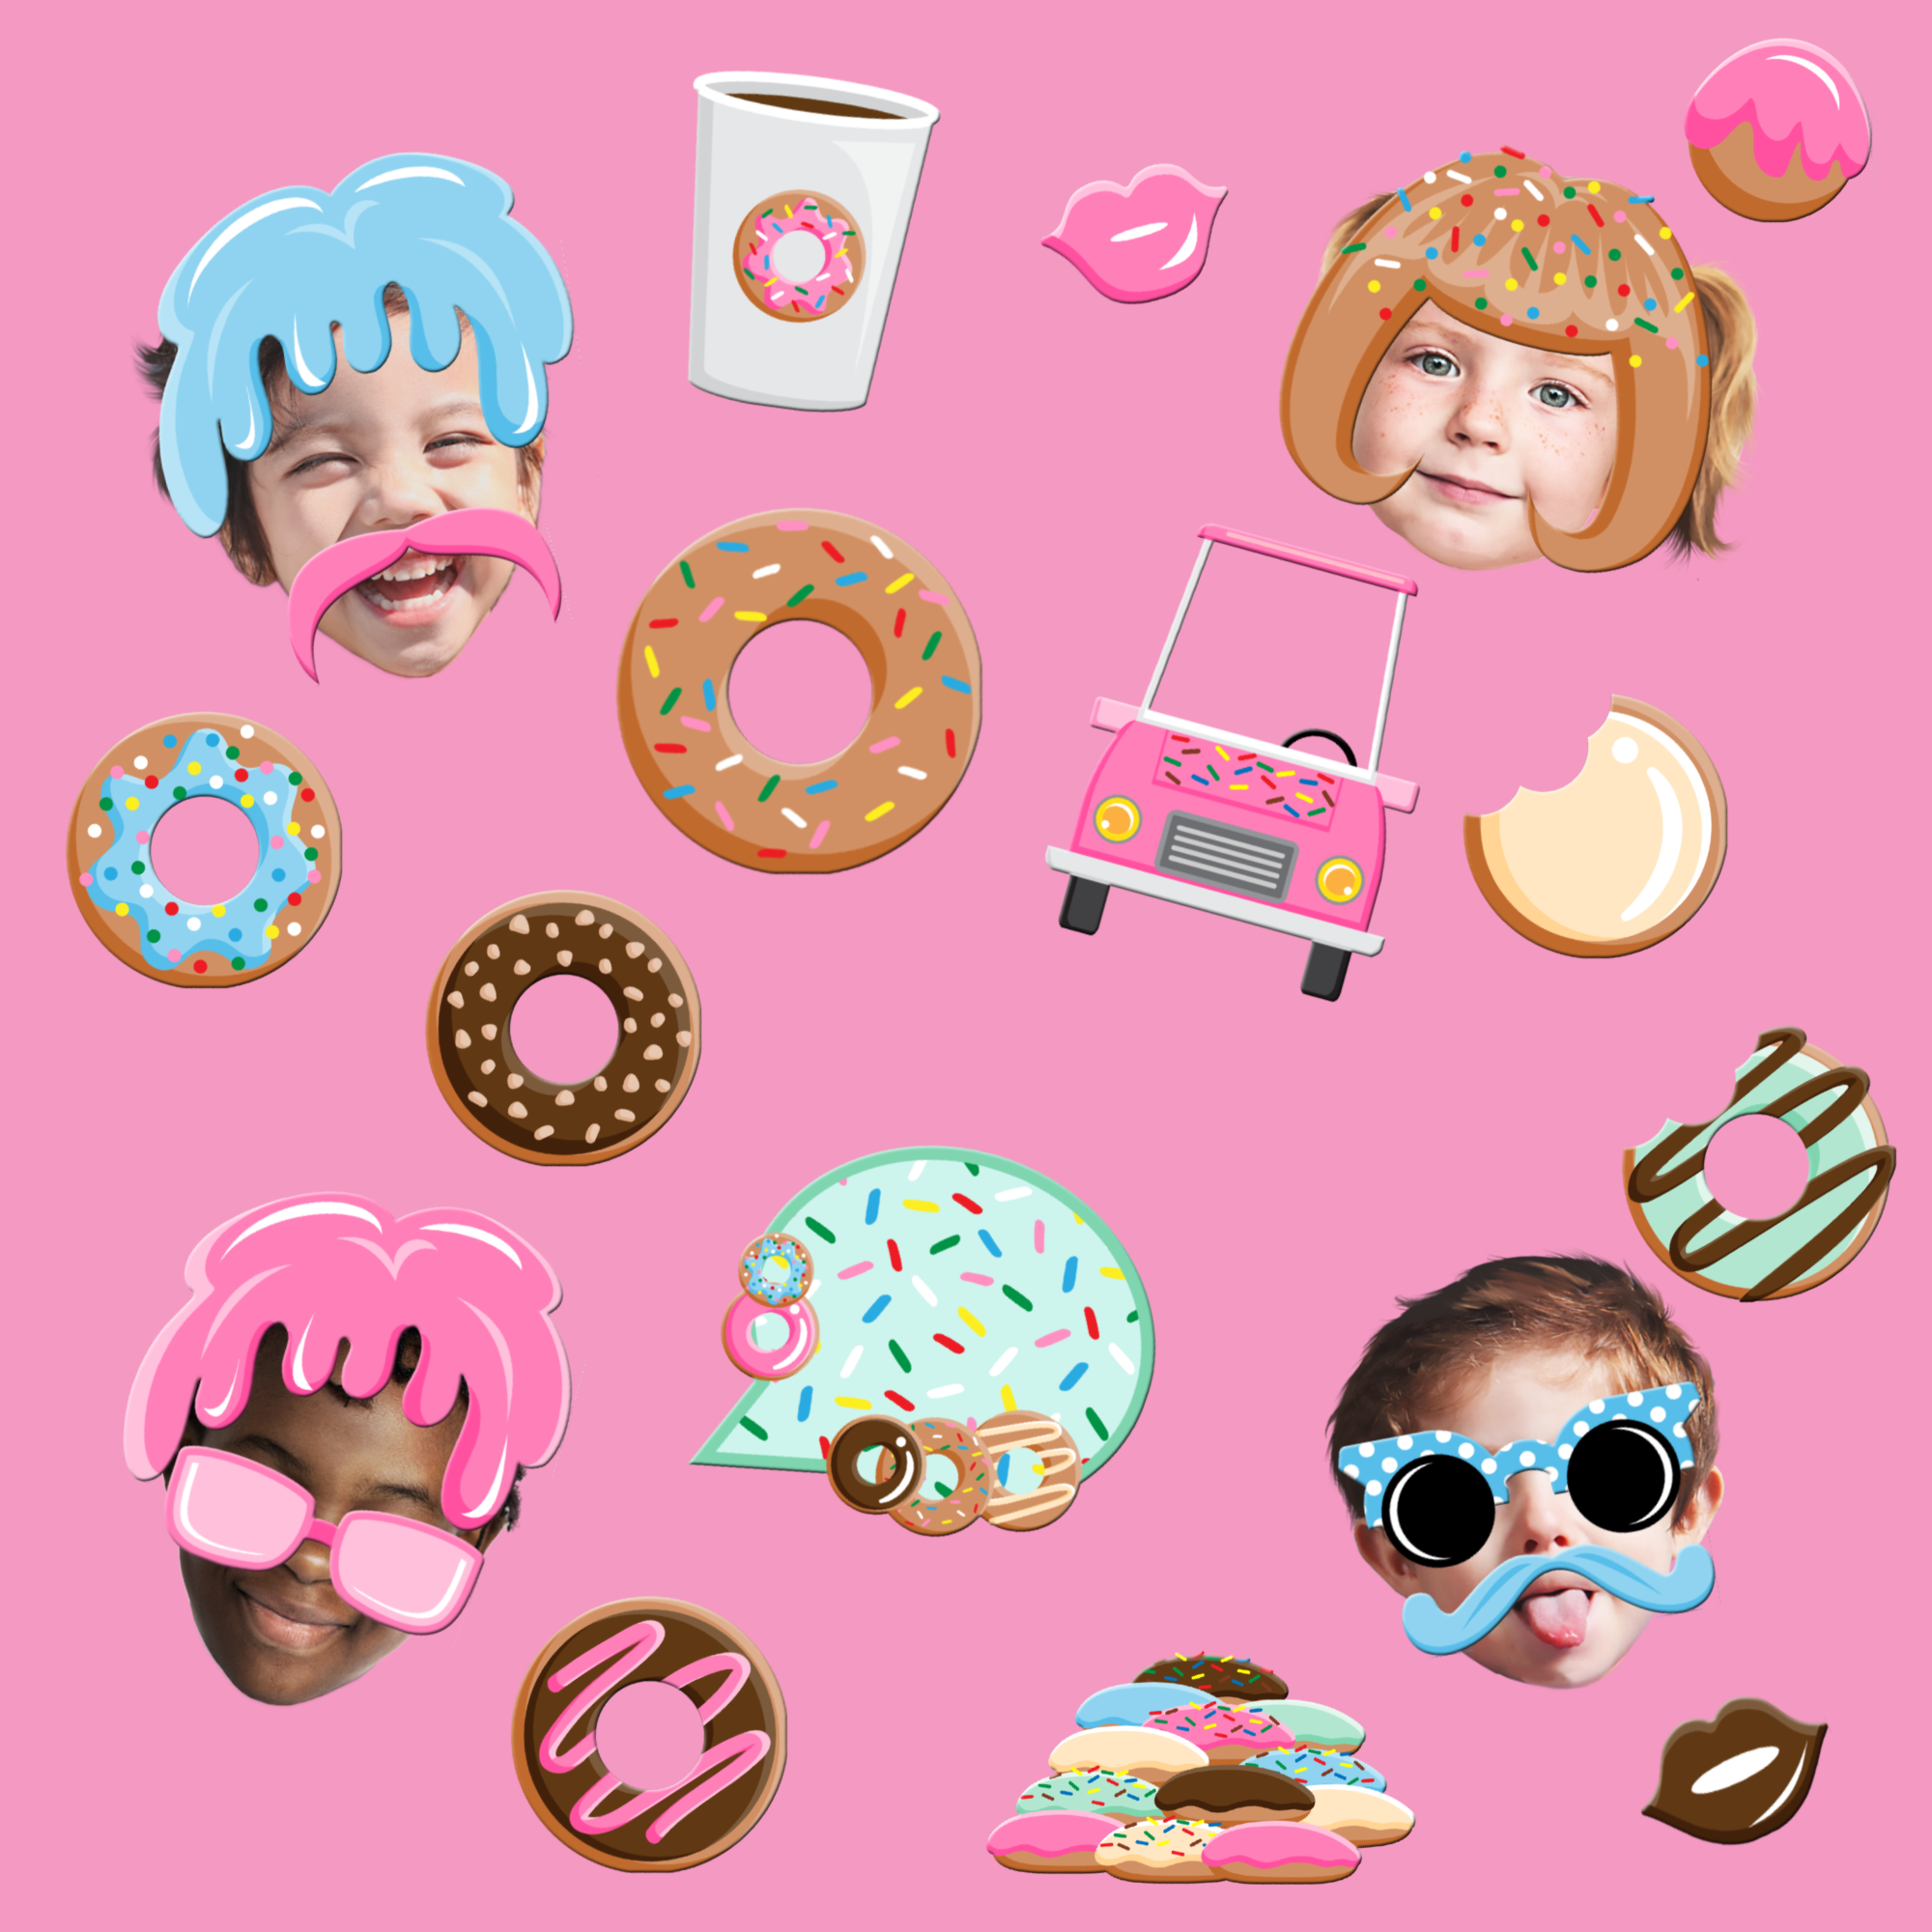 Donut Shoppe Photo Booth Props 20pcs Assembled